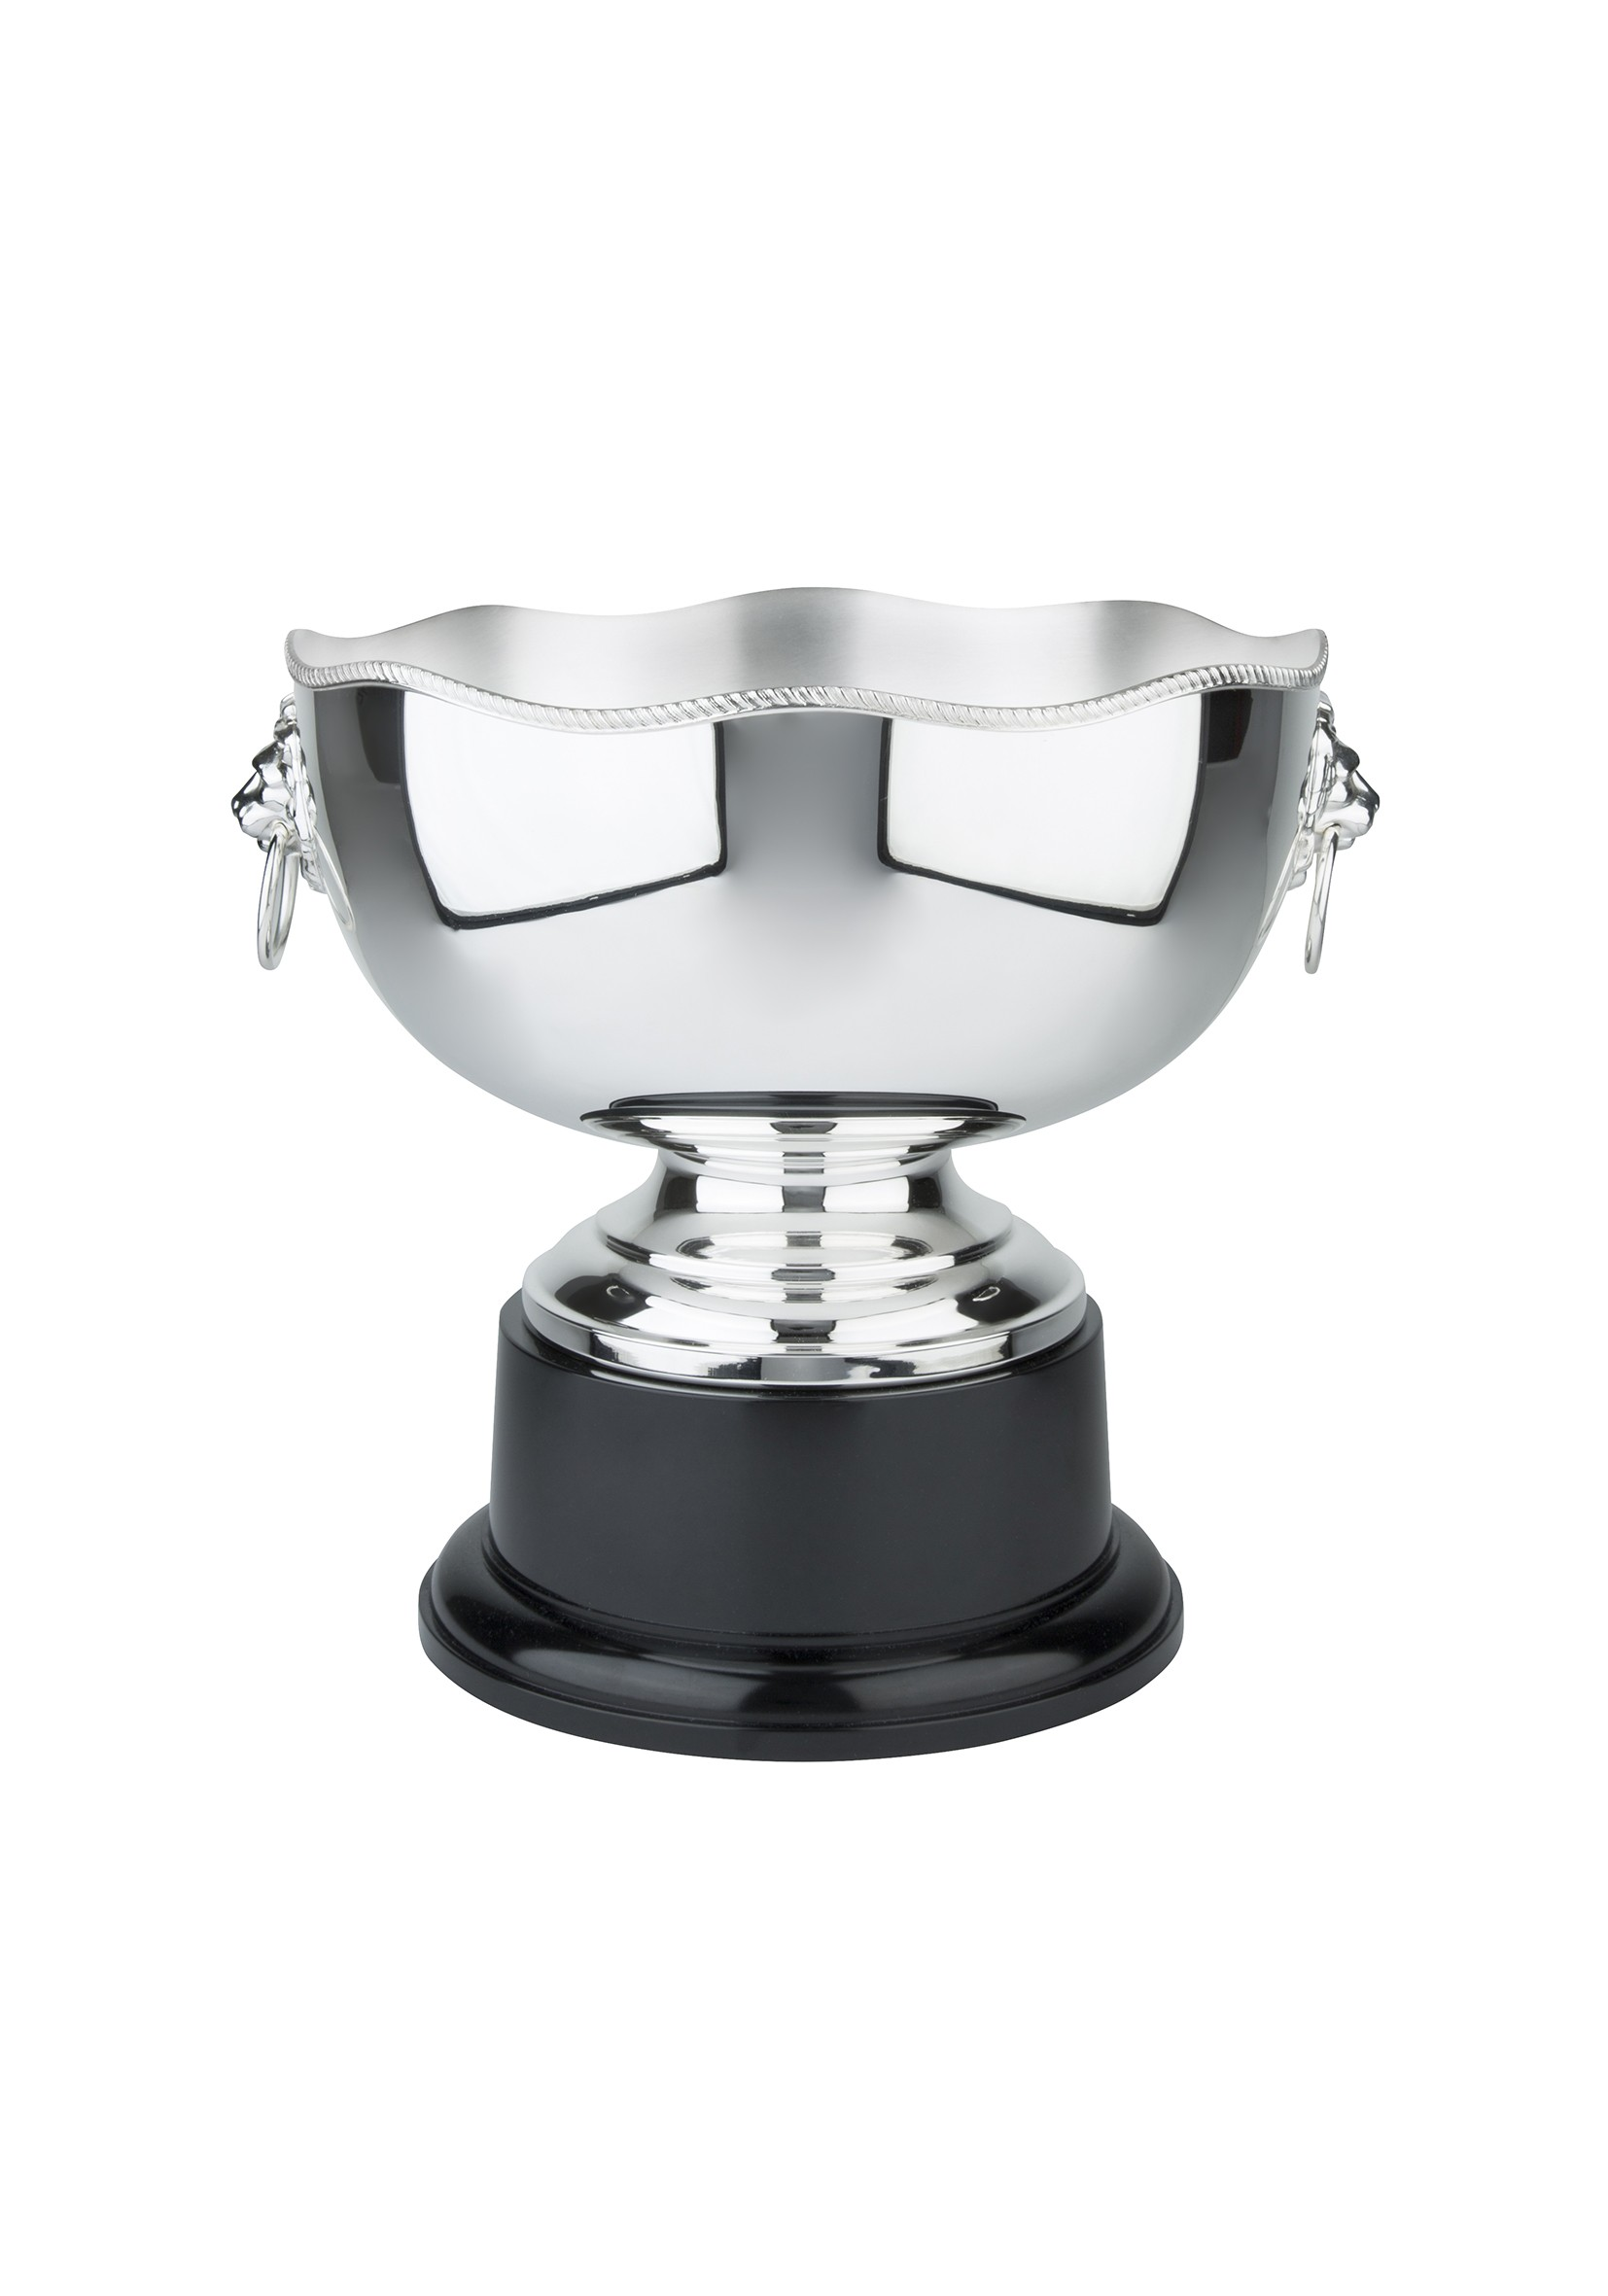 26cm  Wavy Edge Silver Plated Bowl  (plinth band included)